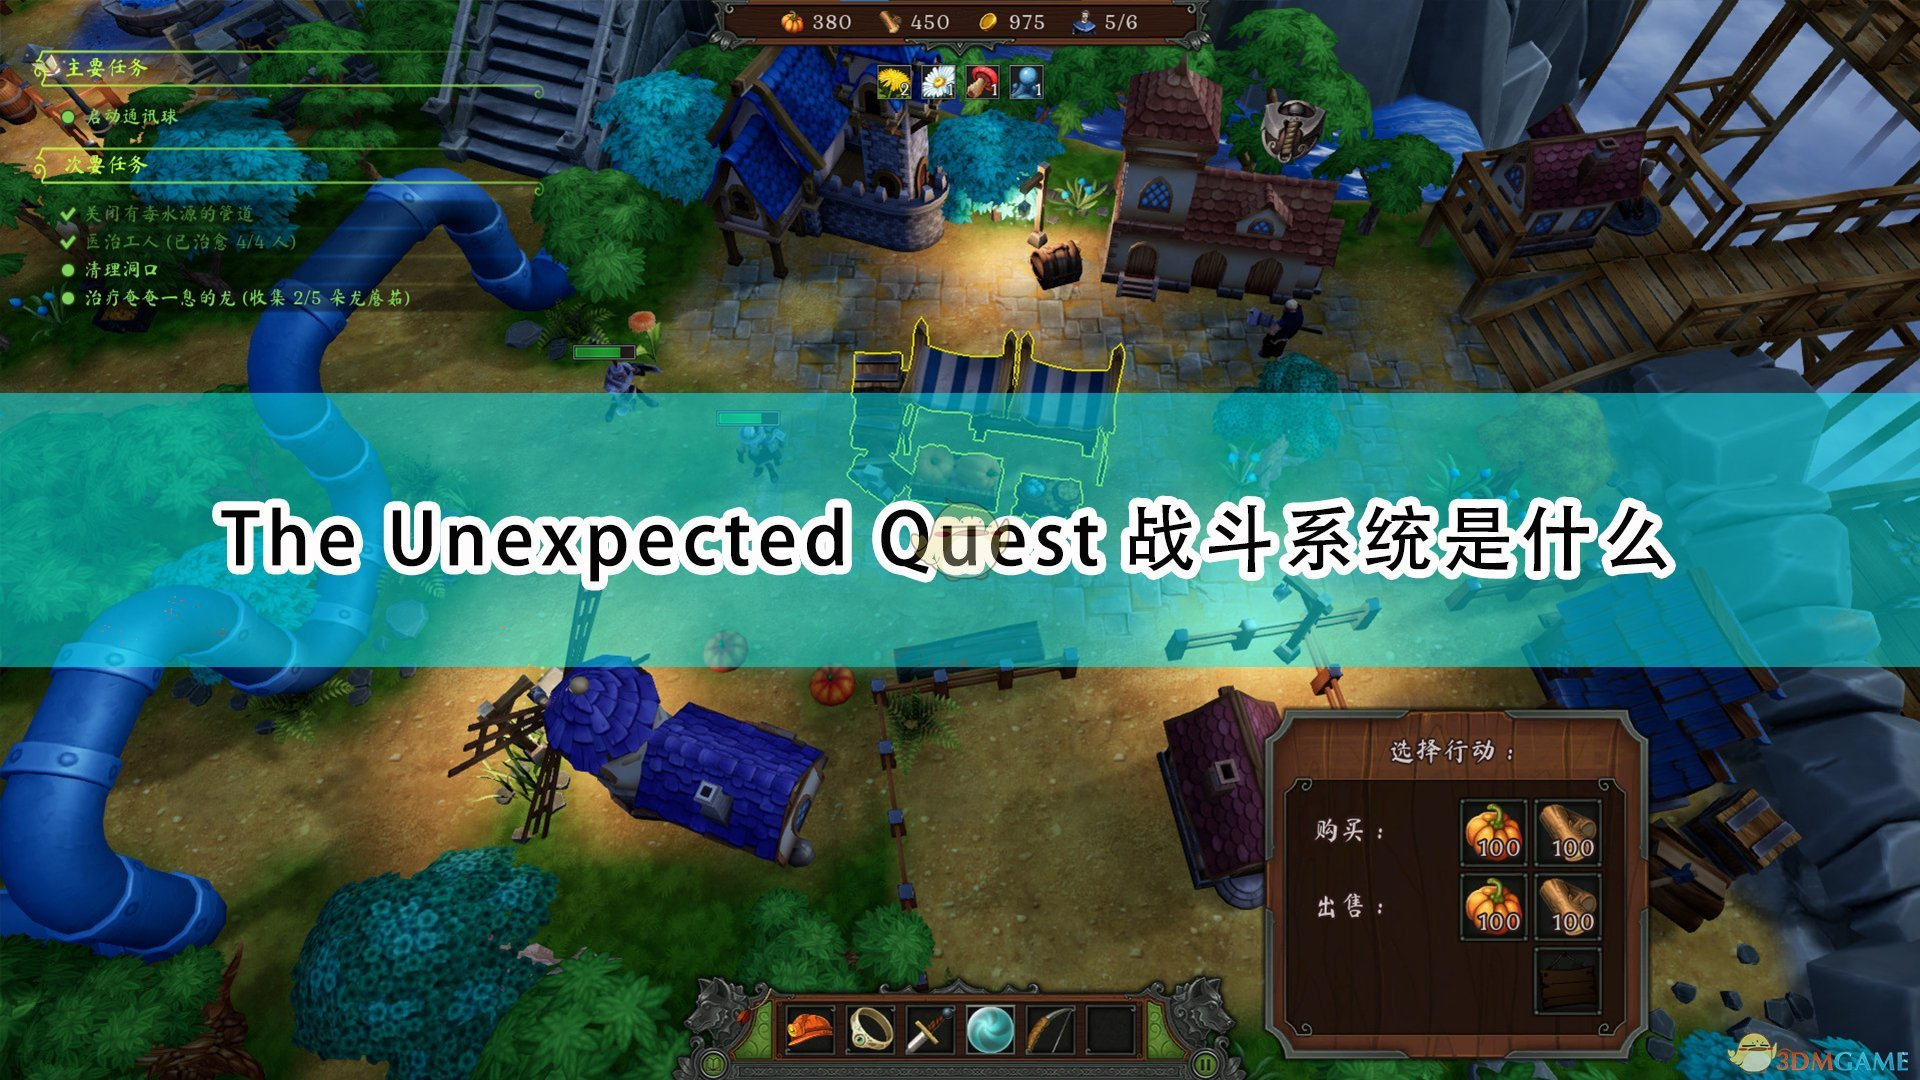 《The Unexpected Quest》战斗系统介绍